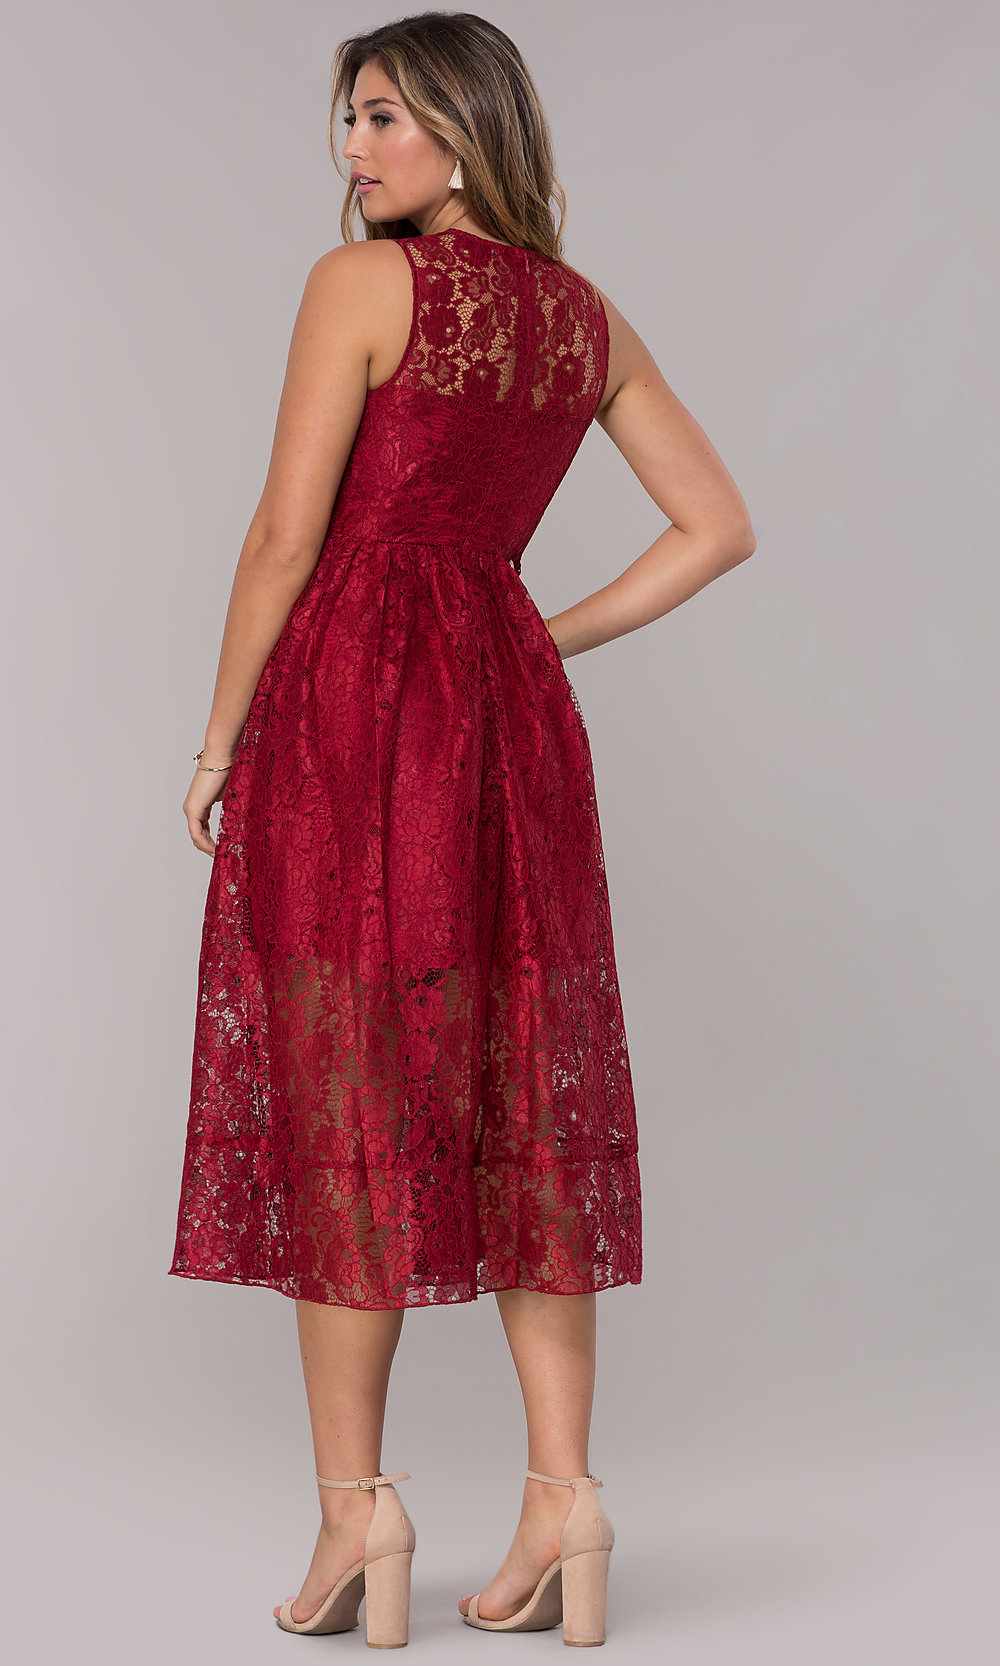 Midi Length Red Lace Wedding Guest Dress Promgirl